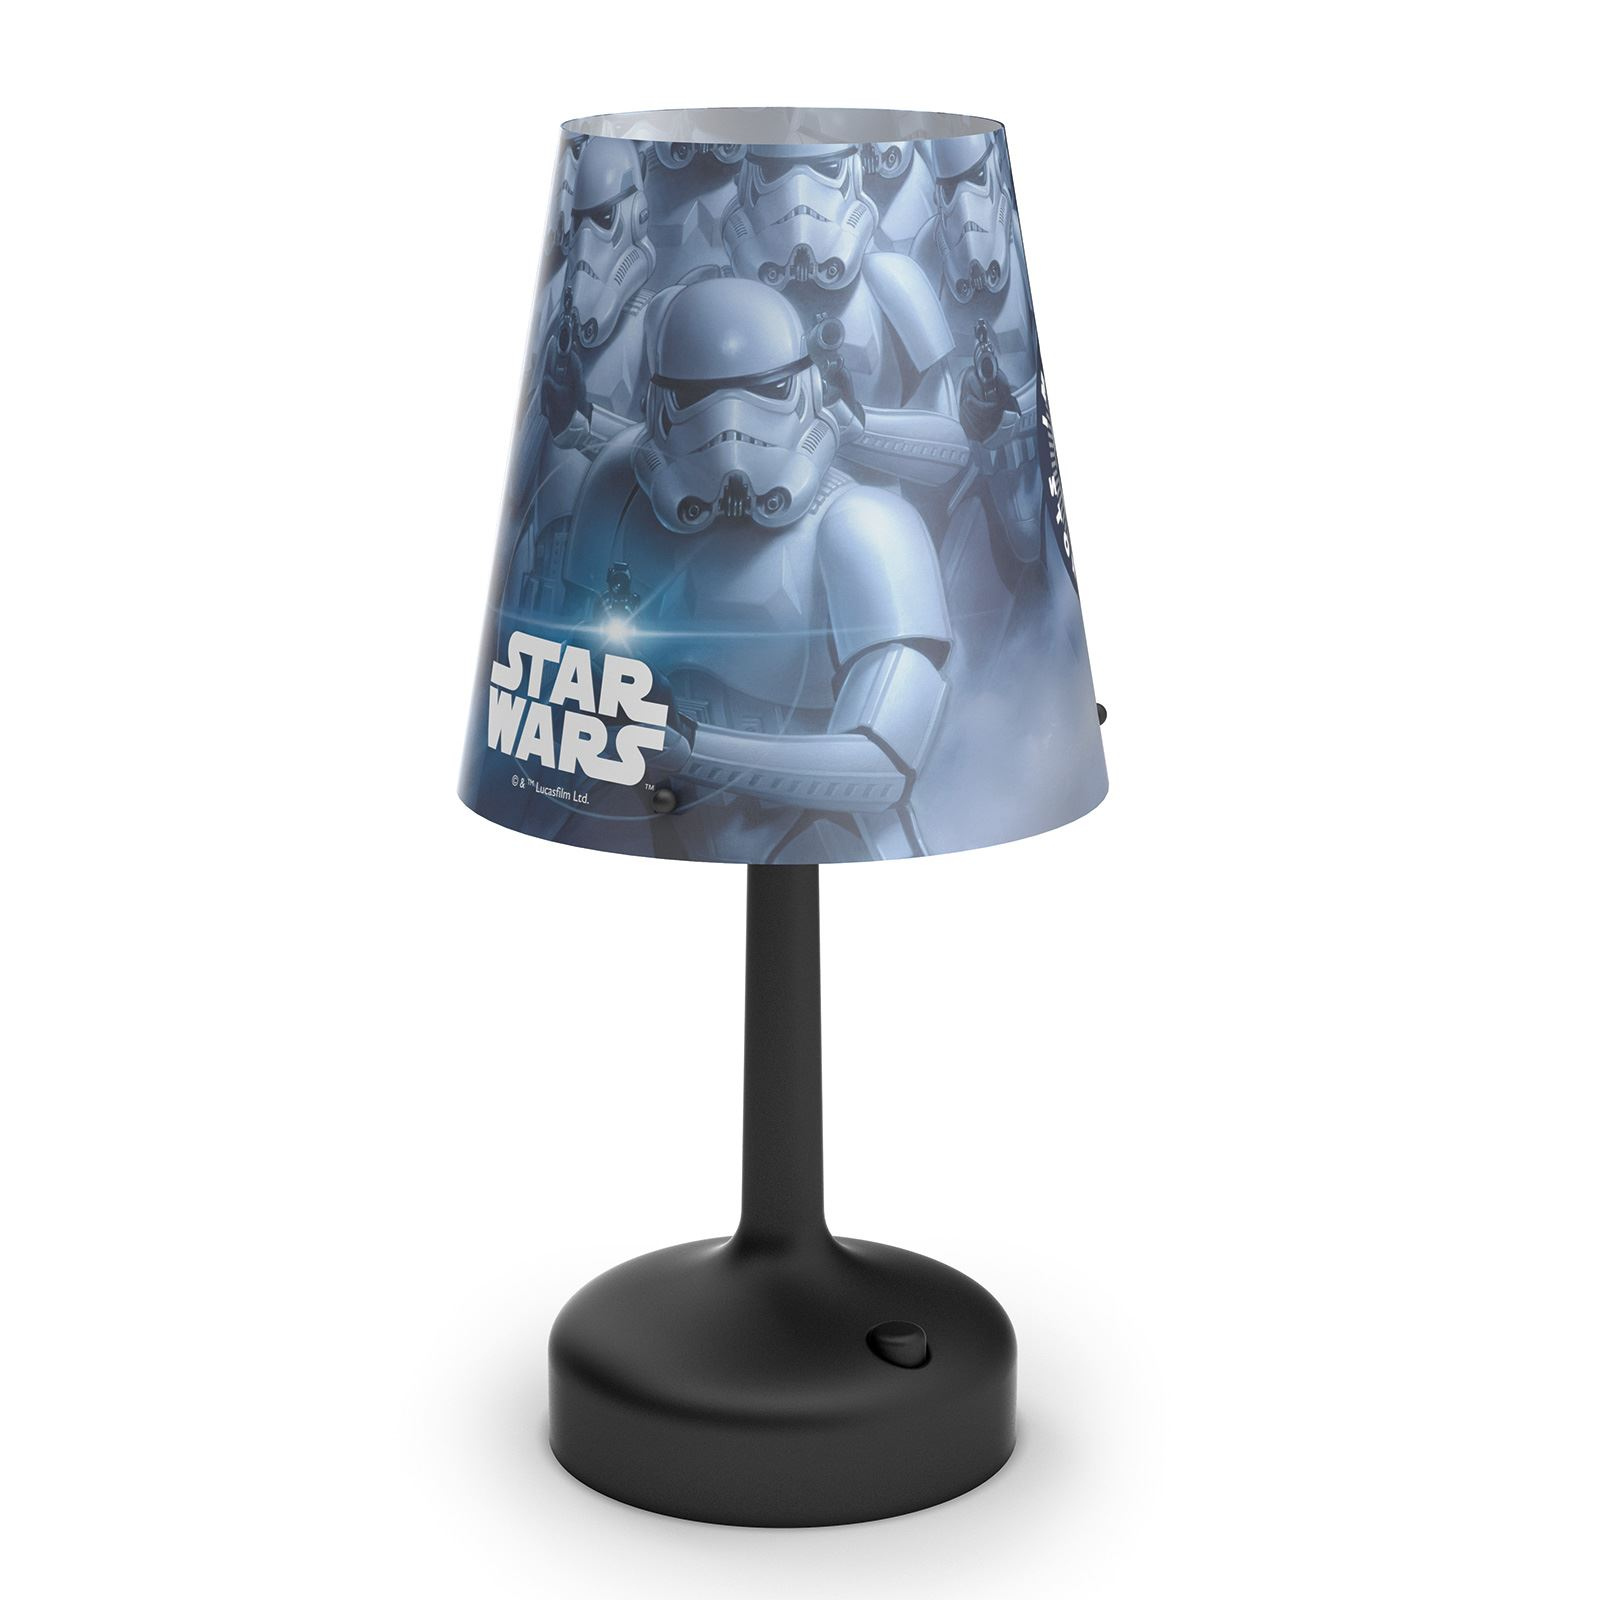 star wars stormtrooper tragbar tischlampe kinder. Black Bedroom Furniture Sets. Home Design Ideas